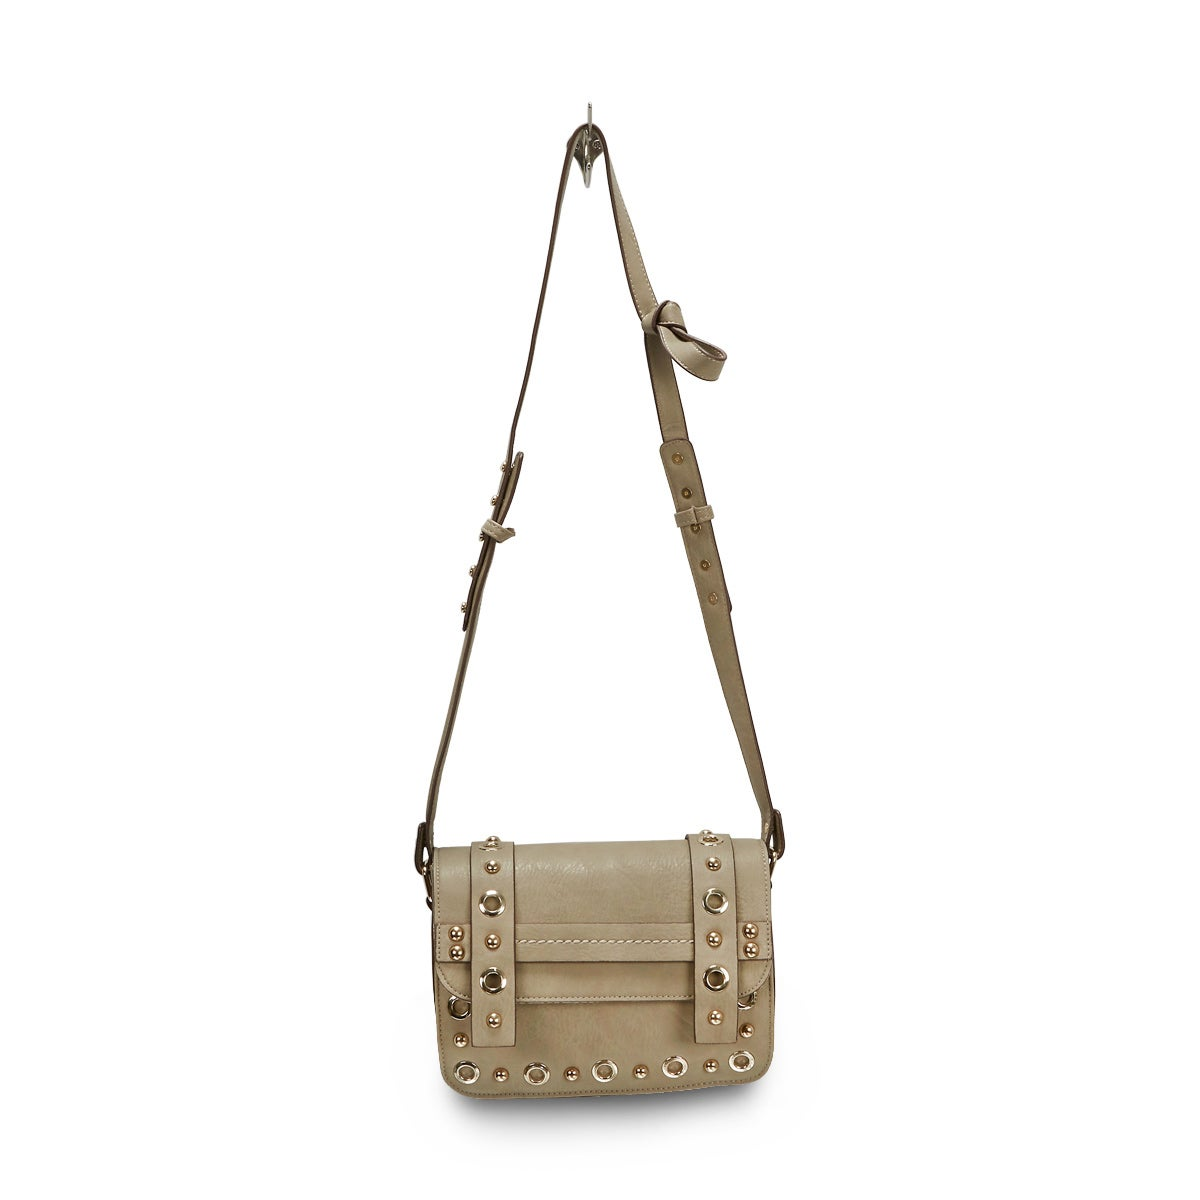 Lds JNella grey grommet cross body bag